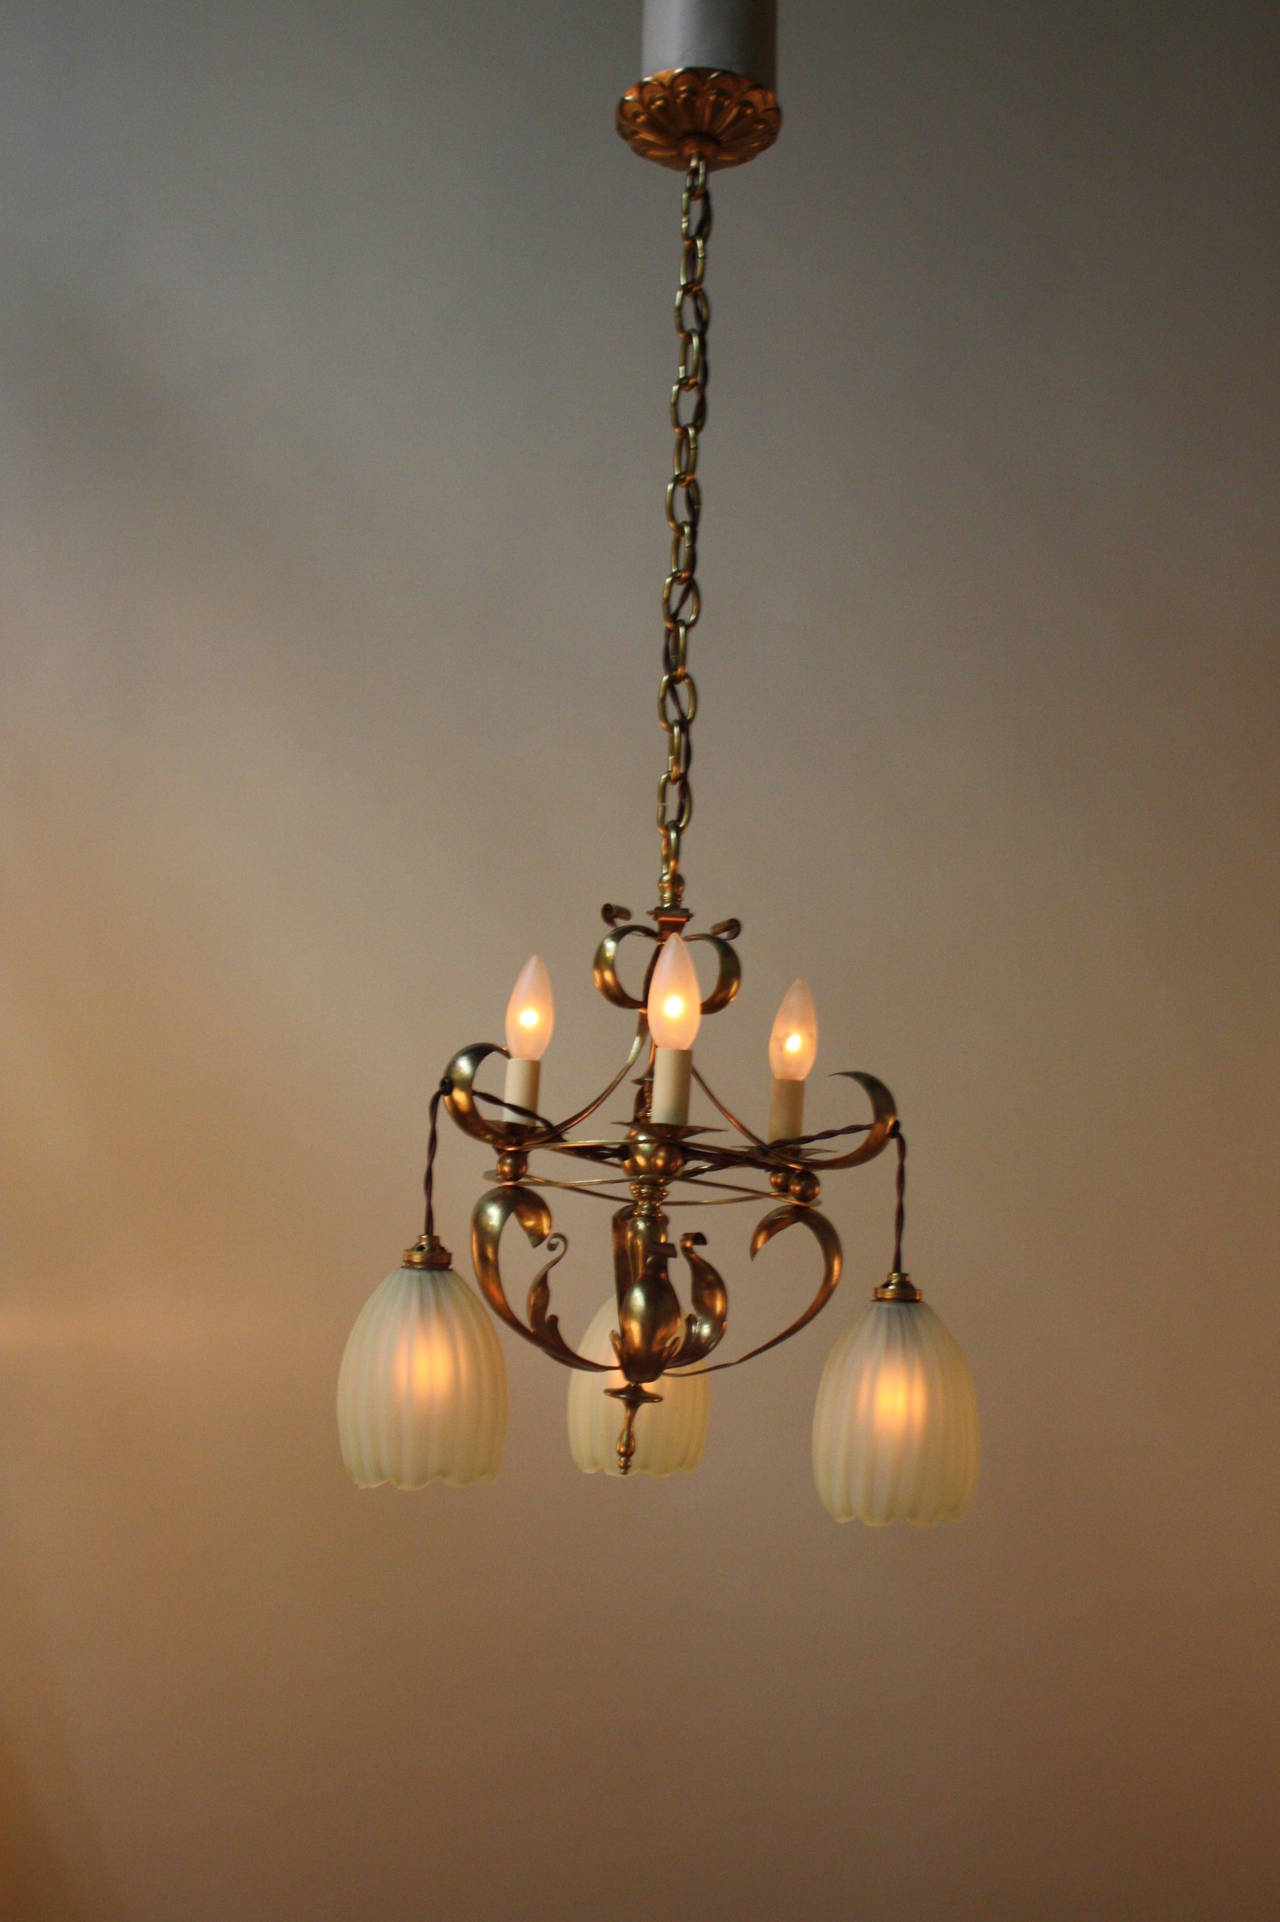 English Arts and crafts Art Nouveau Brass chandelier by Benson